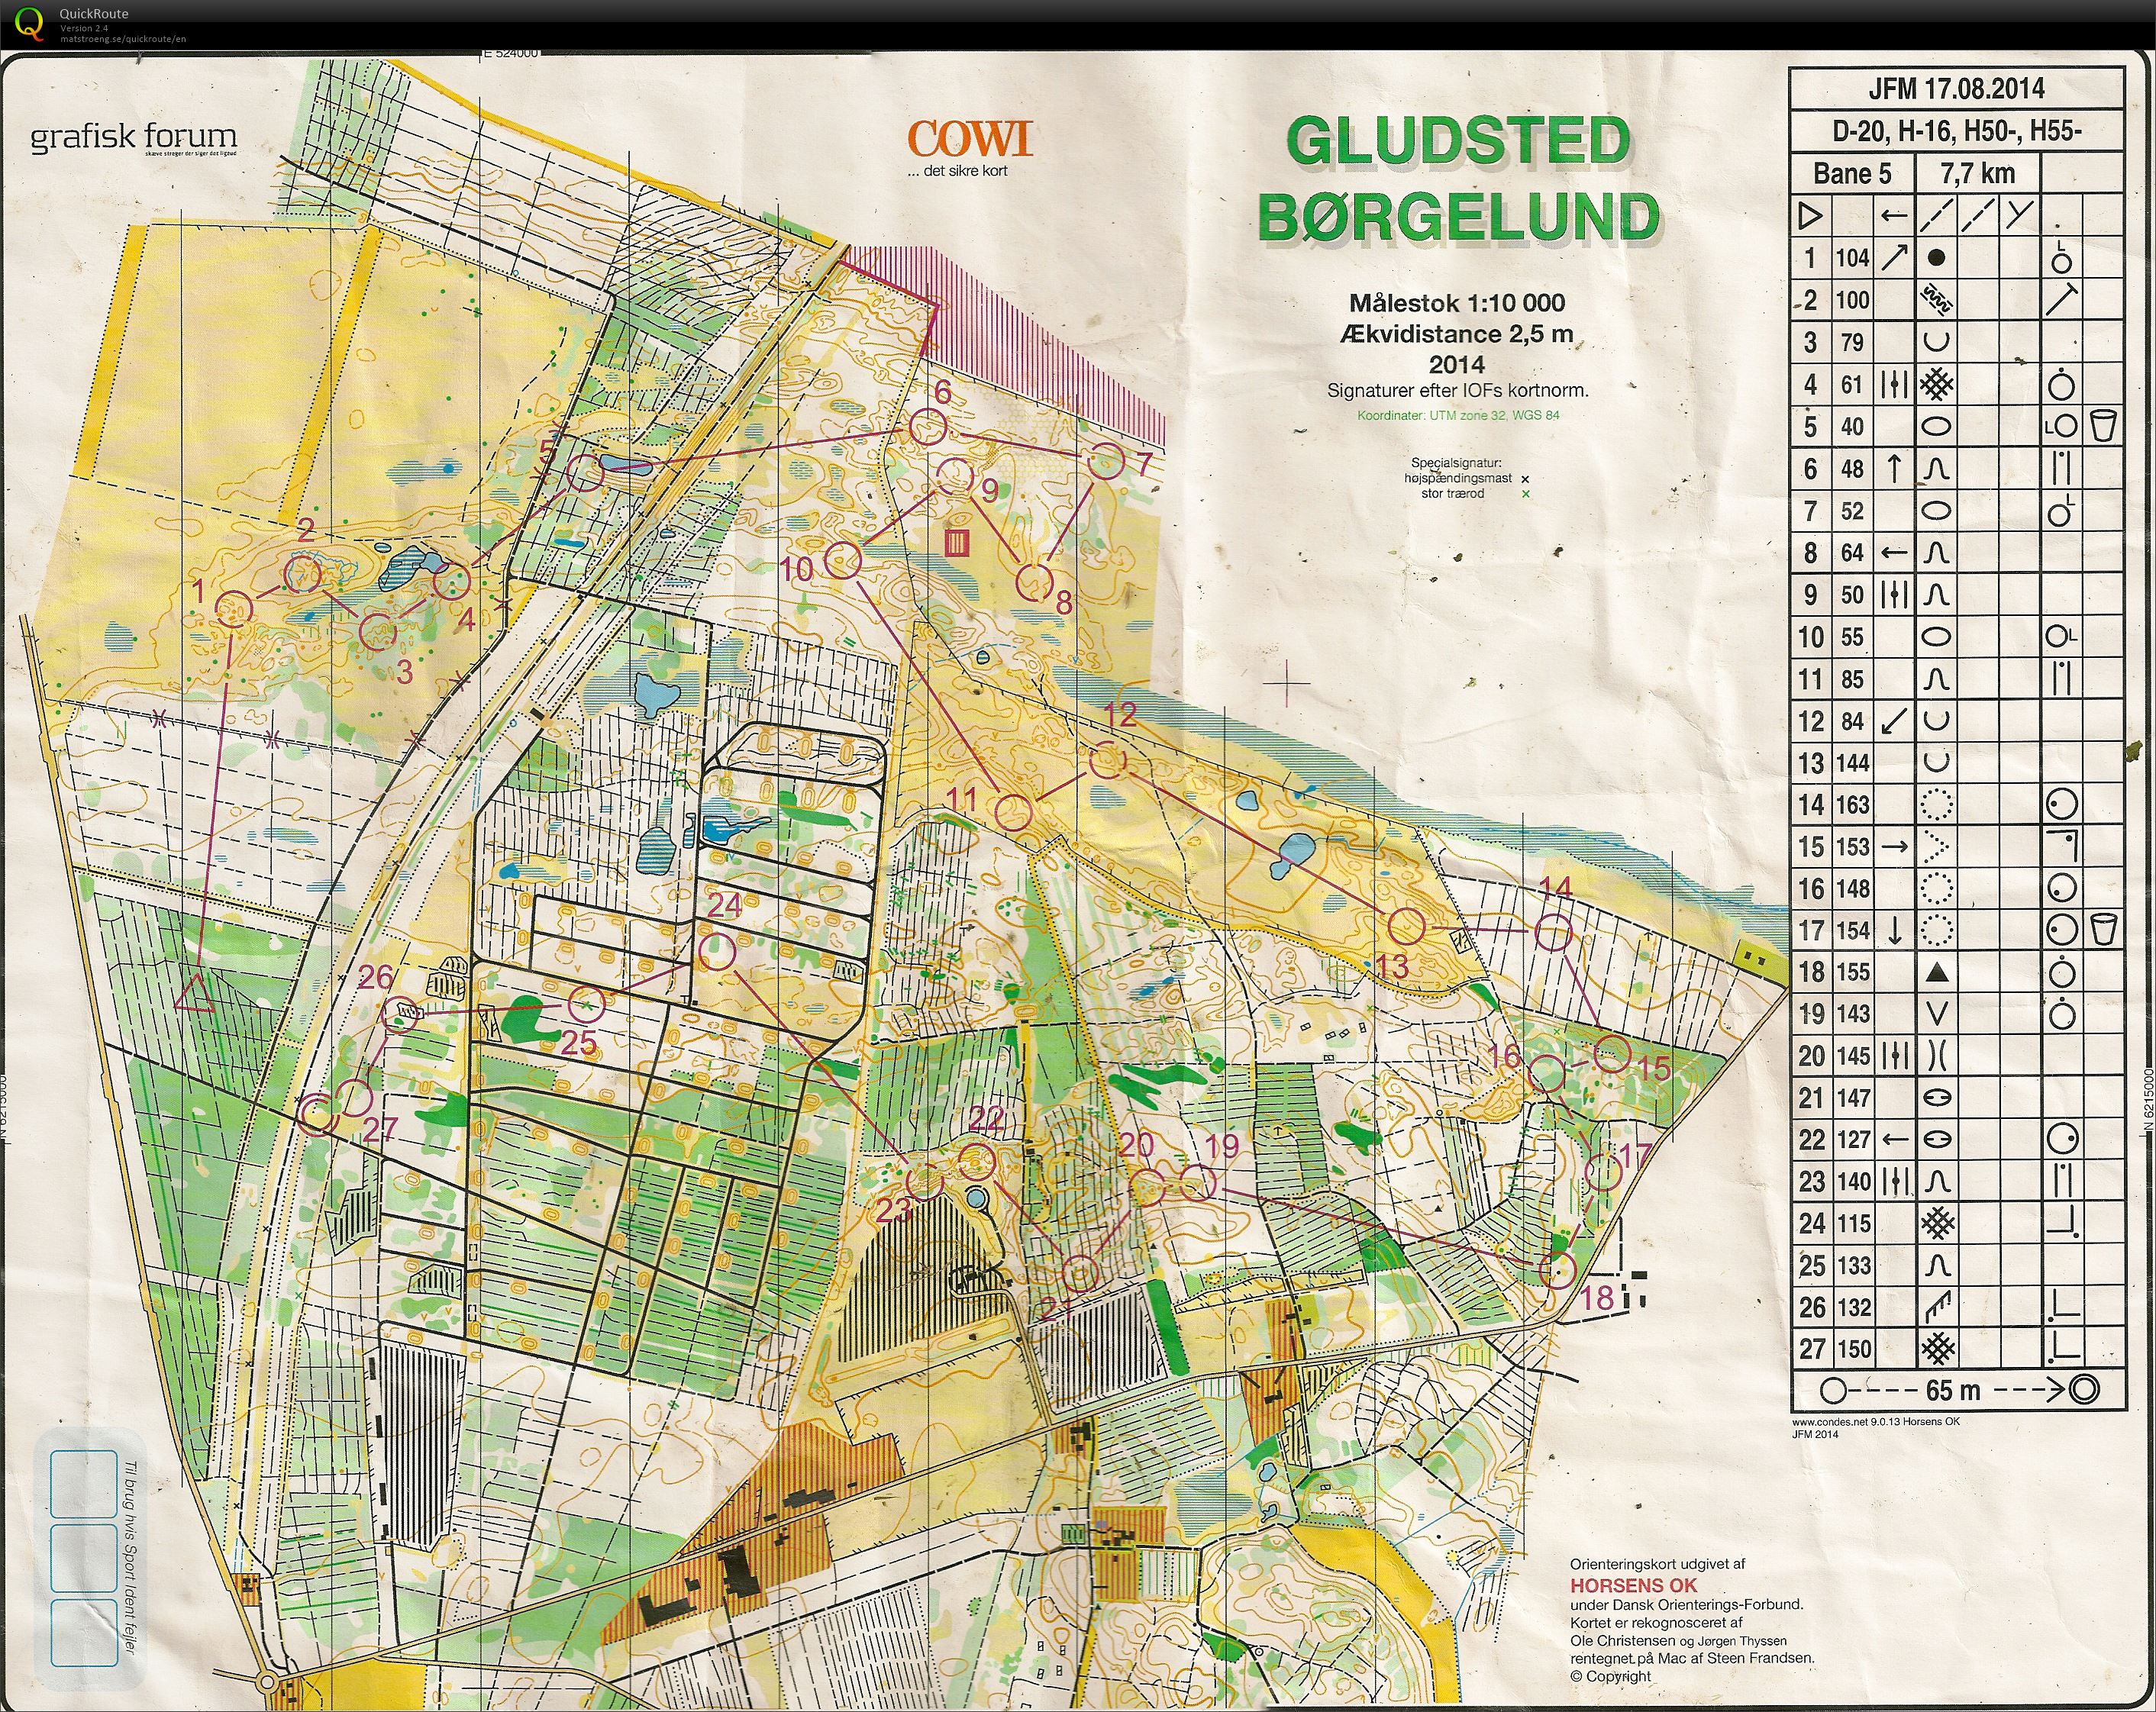 JFM Lang H55 Brglund August 17th 2014 Orienteering Map from